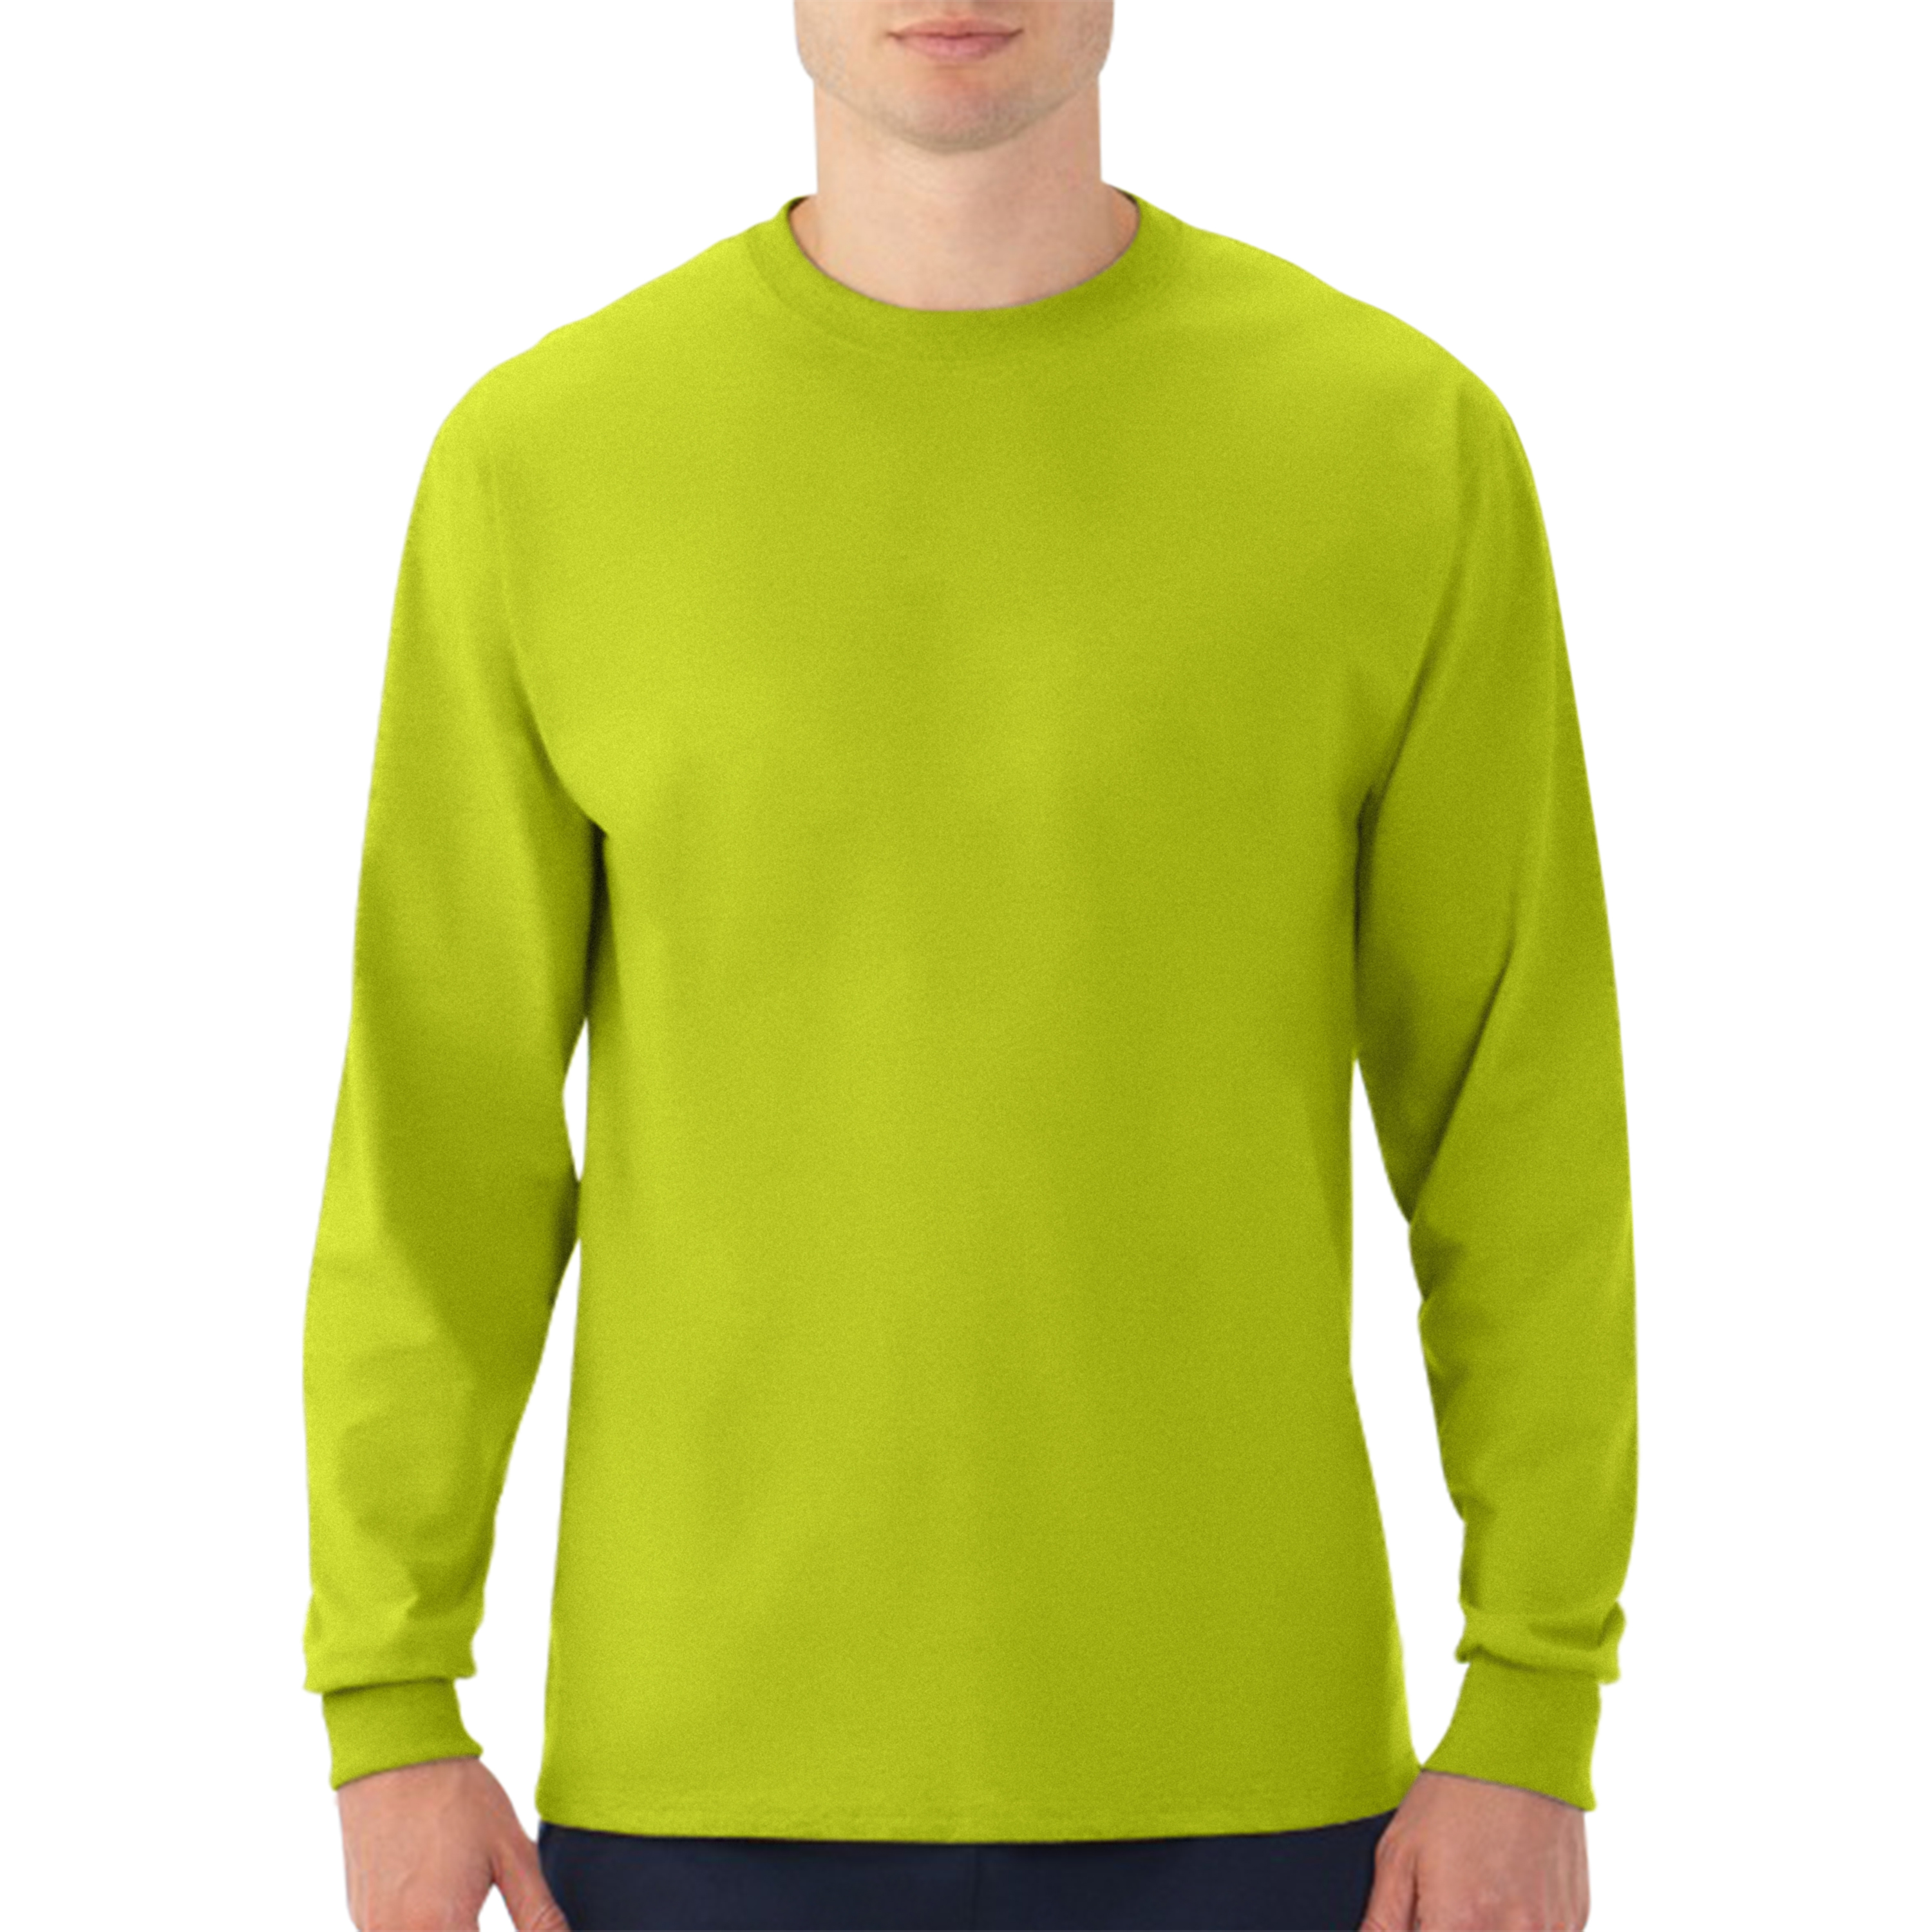 Generic Fruit of the Loom Platinum Eversoft Big Men's Long Sleeve Crew T Shirt with Rib Cuffs